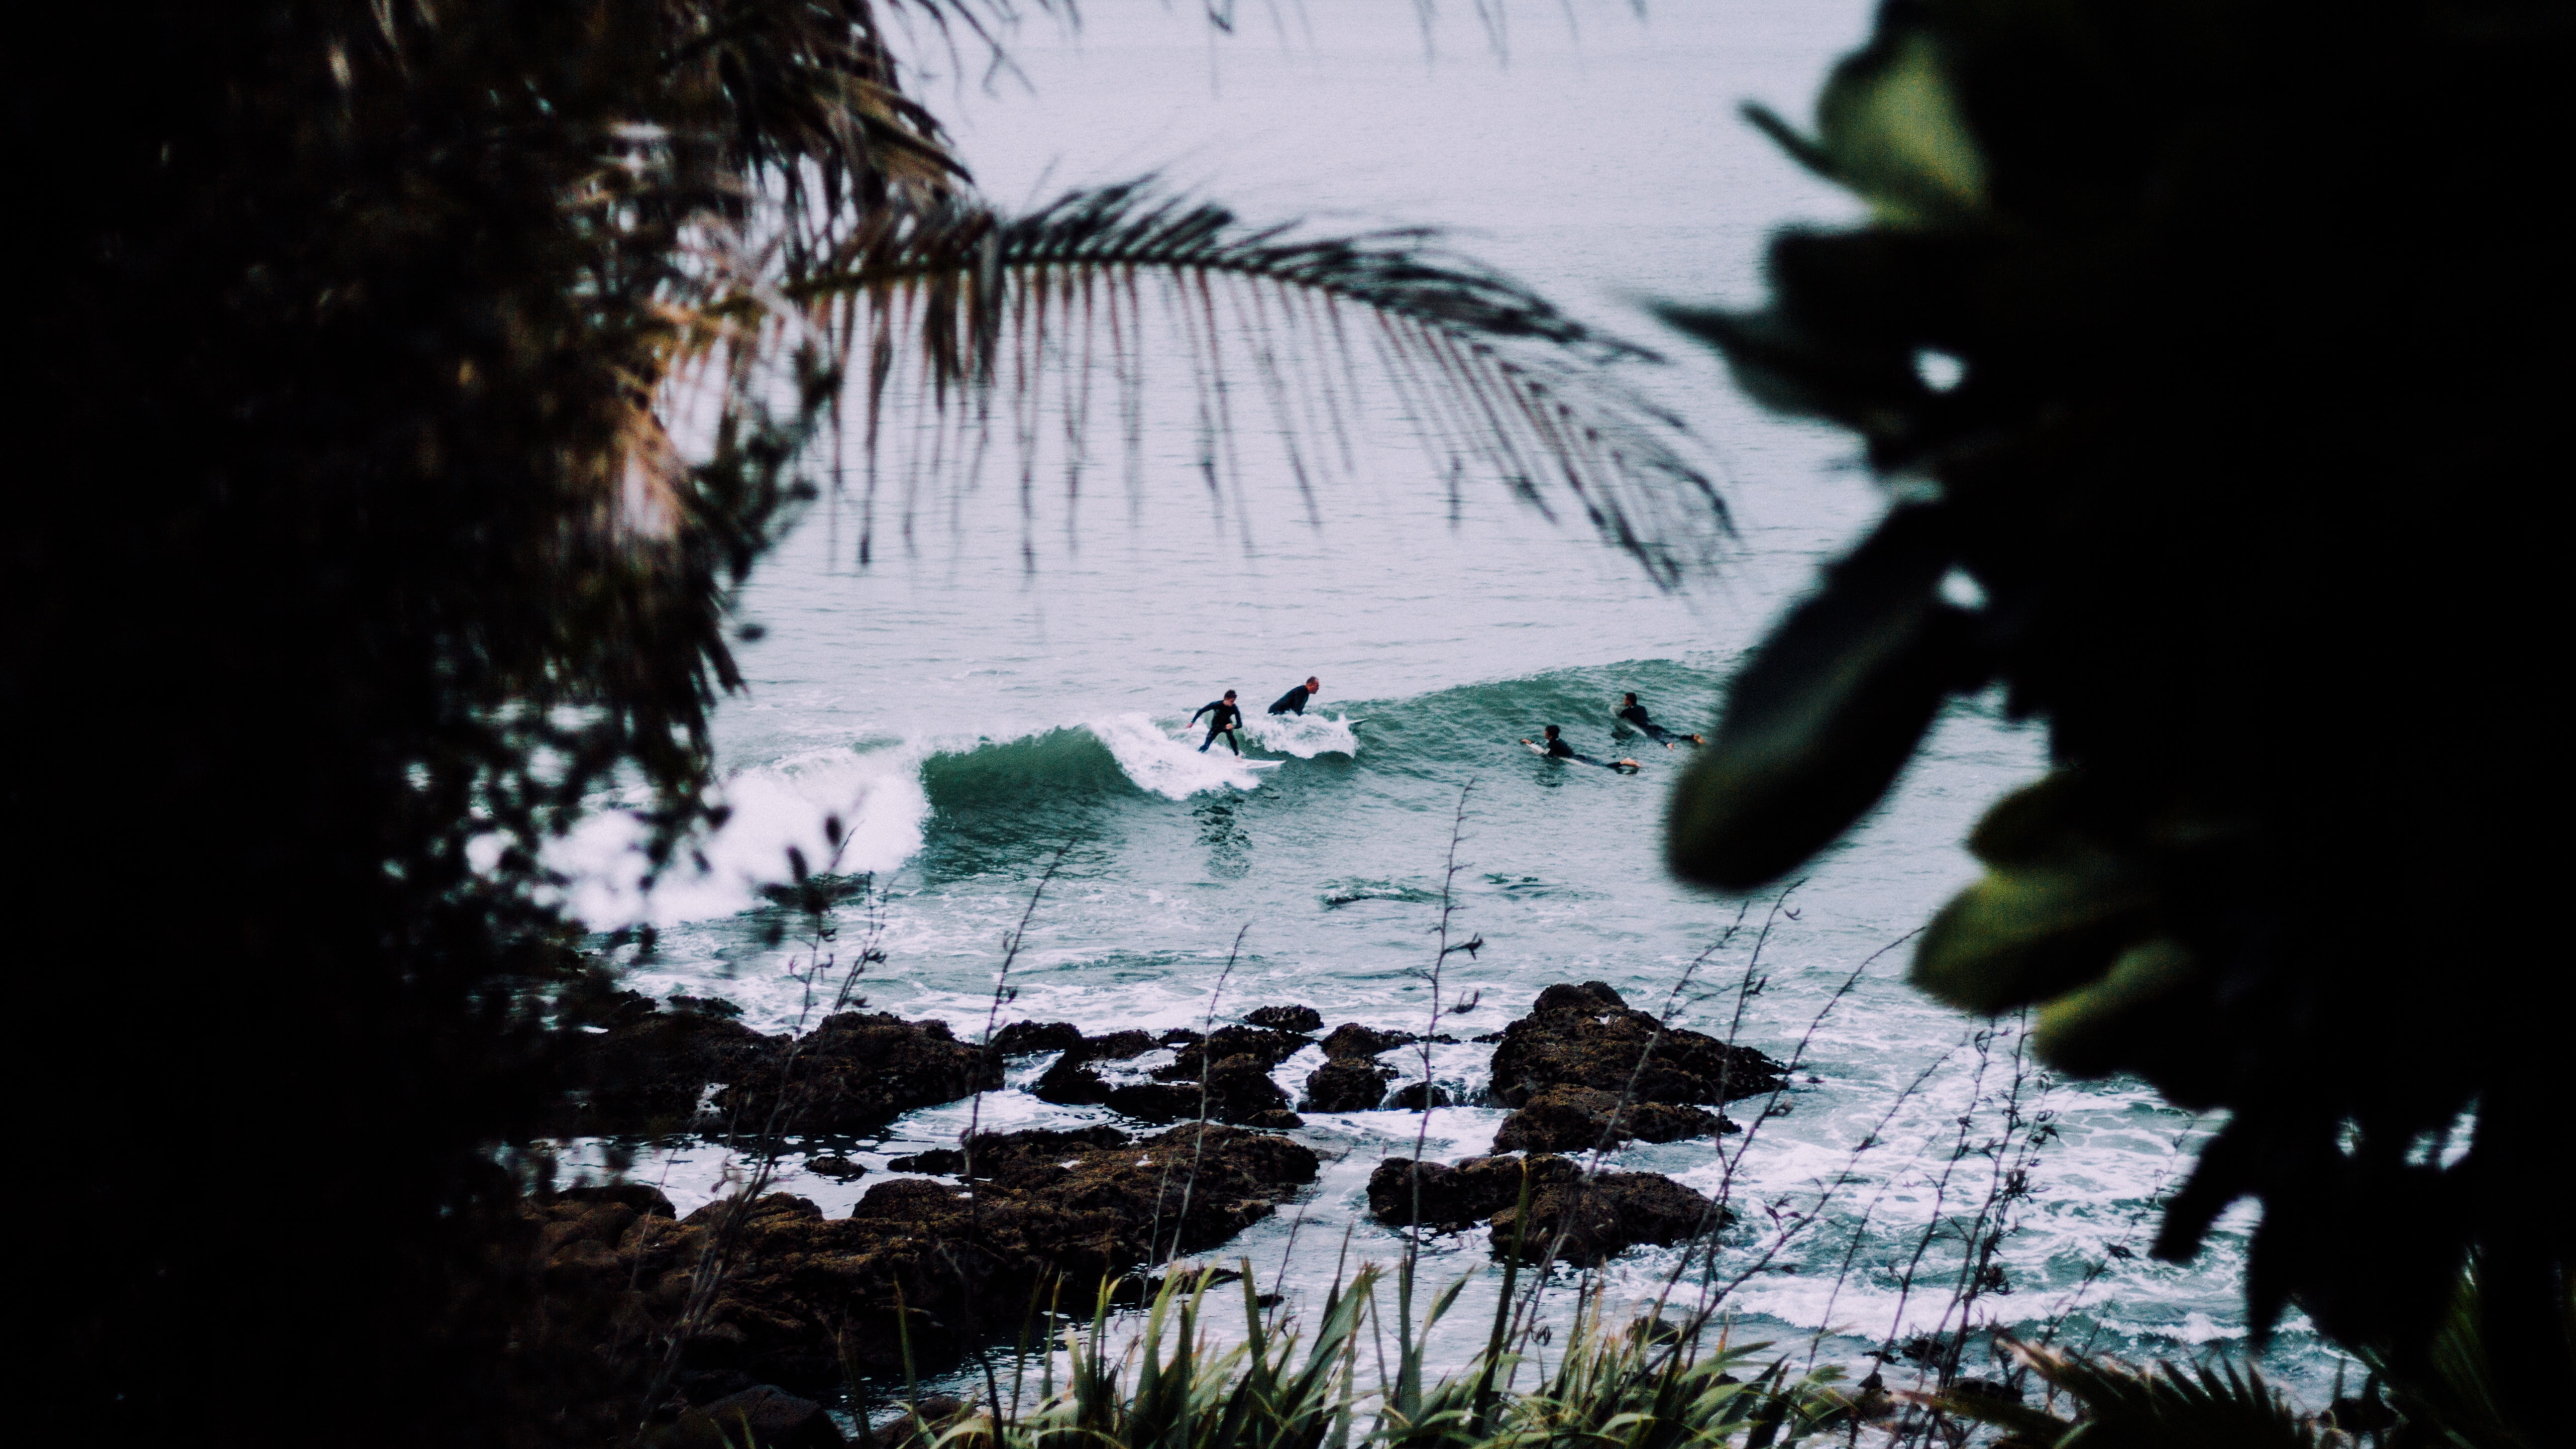 A view of surfers catching waves in the water in Whale Bay from the trees